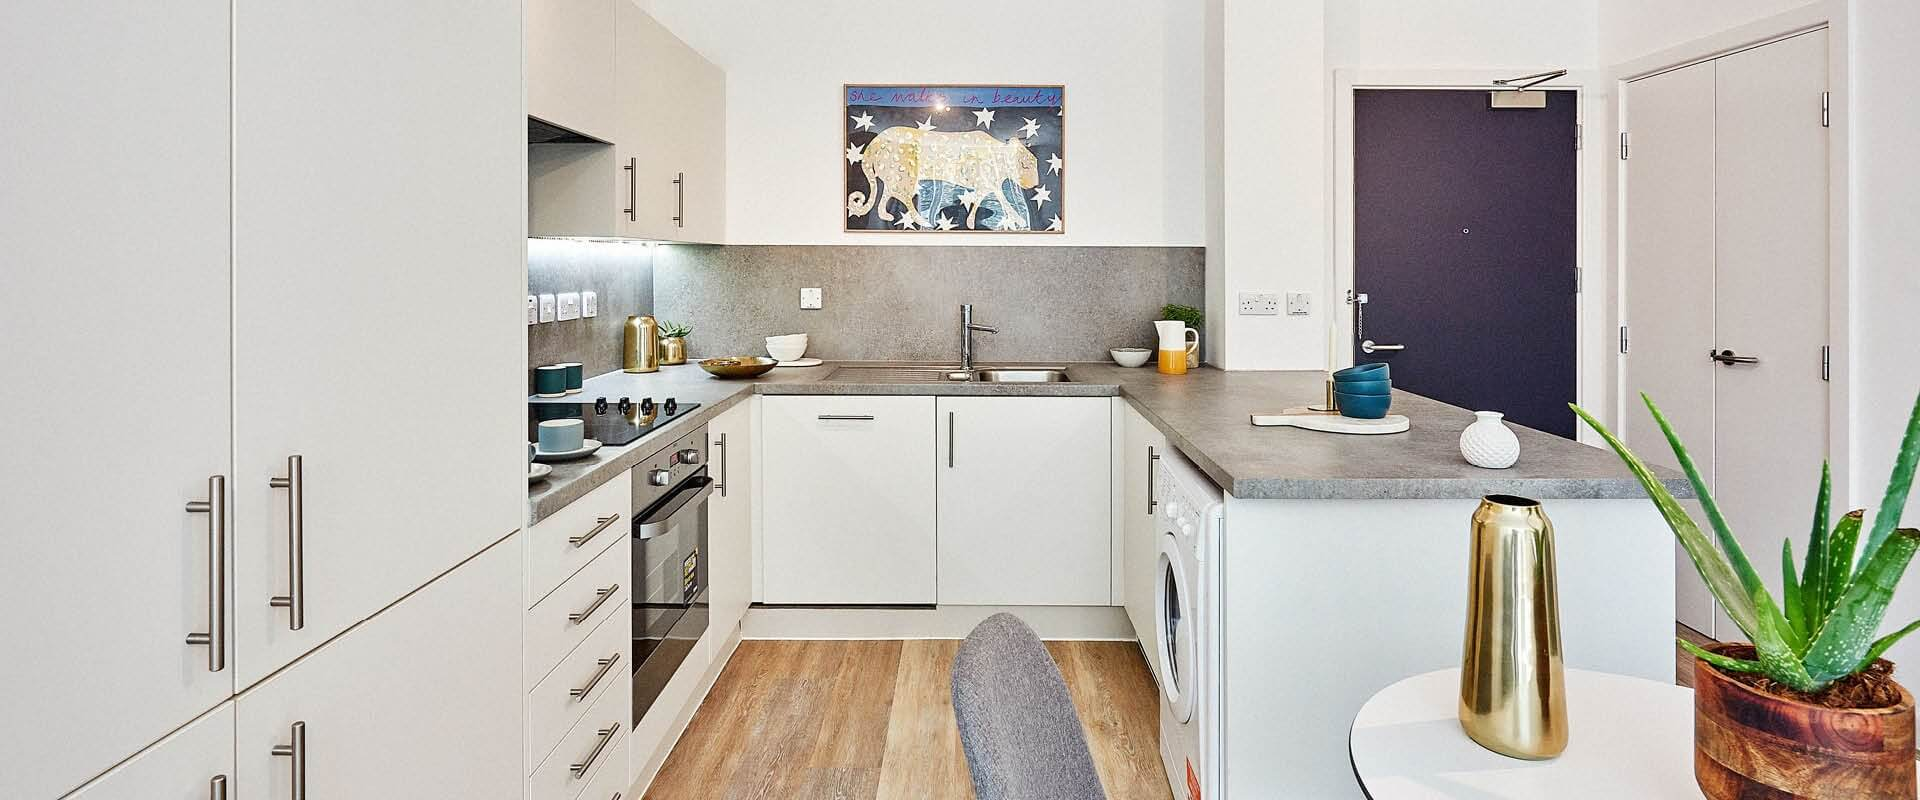 Way of Life - The Wullcomb, Leicester - One Bedroom Apartment Kitchen